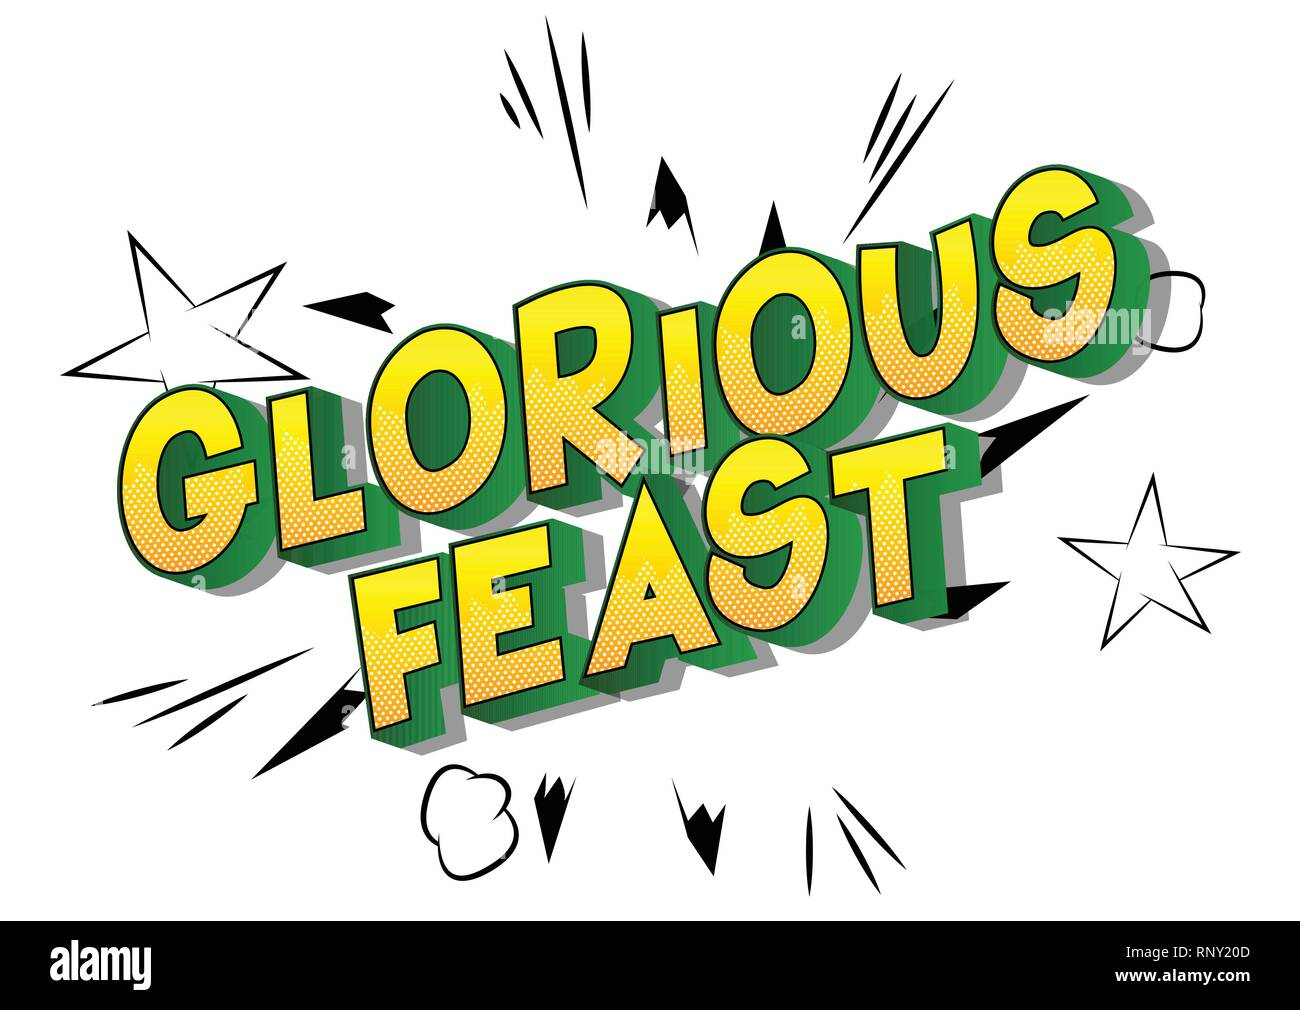 Glorious Feast - Vector illustrated comic book style phrase on abstract background. - Stock Image